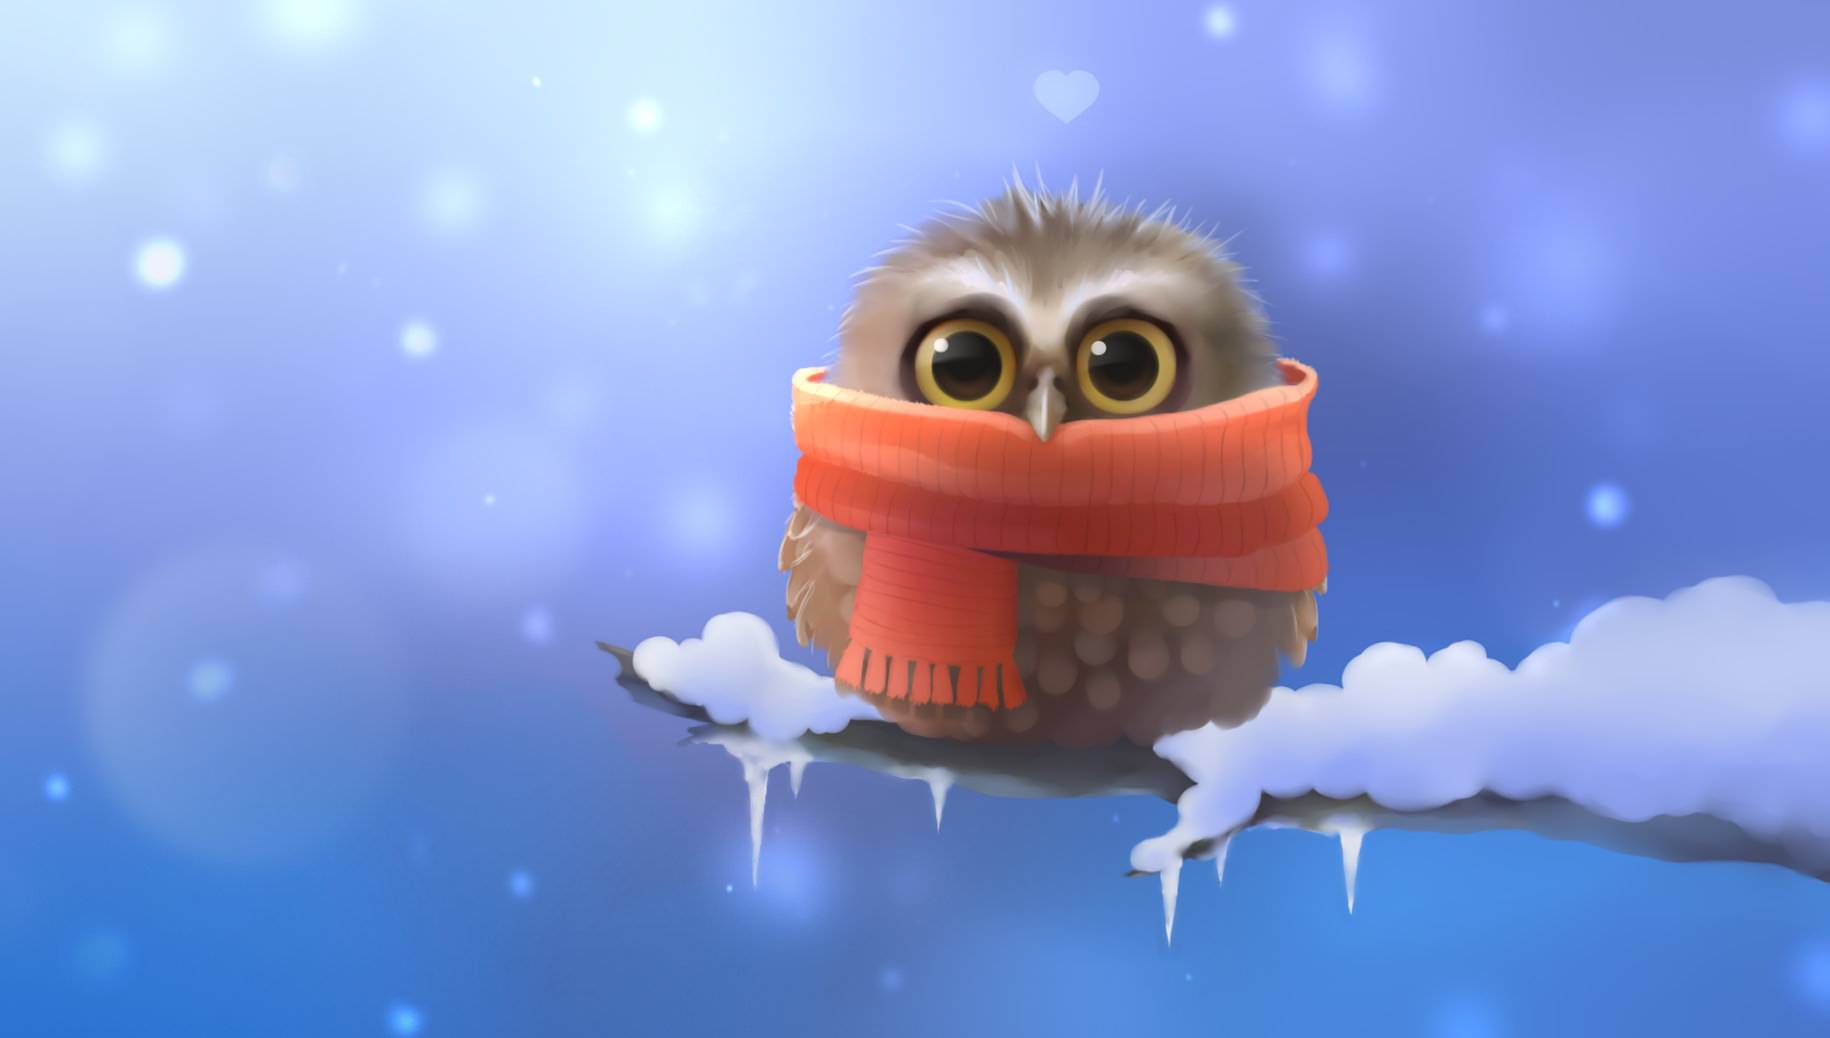 Cool Owl Wallpaper